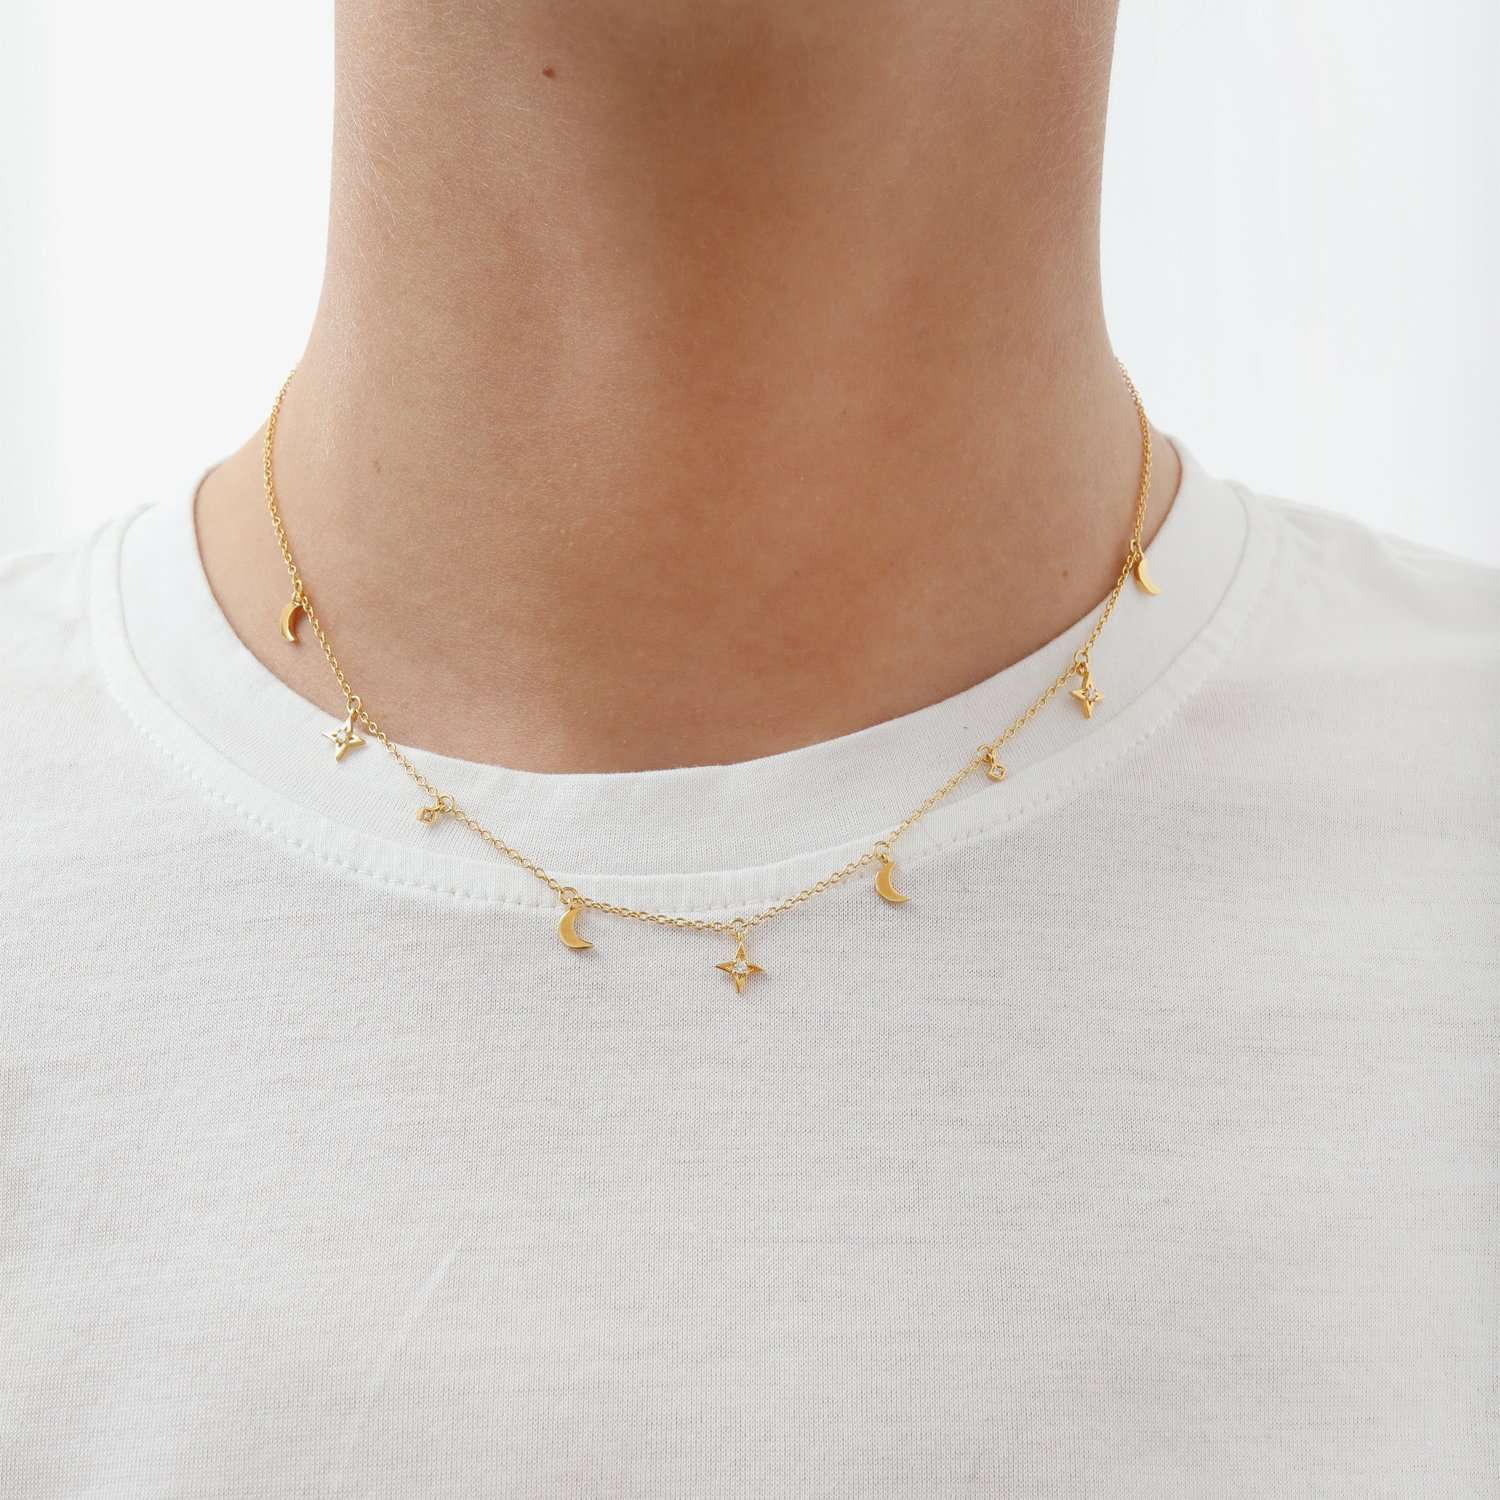 Buy online capsule necklace